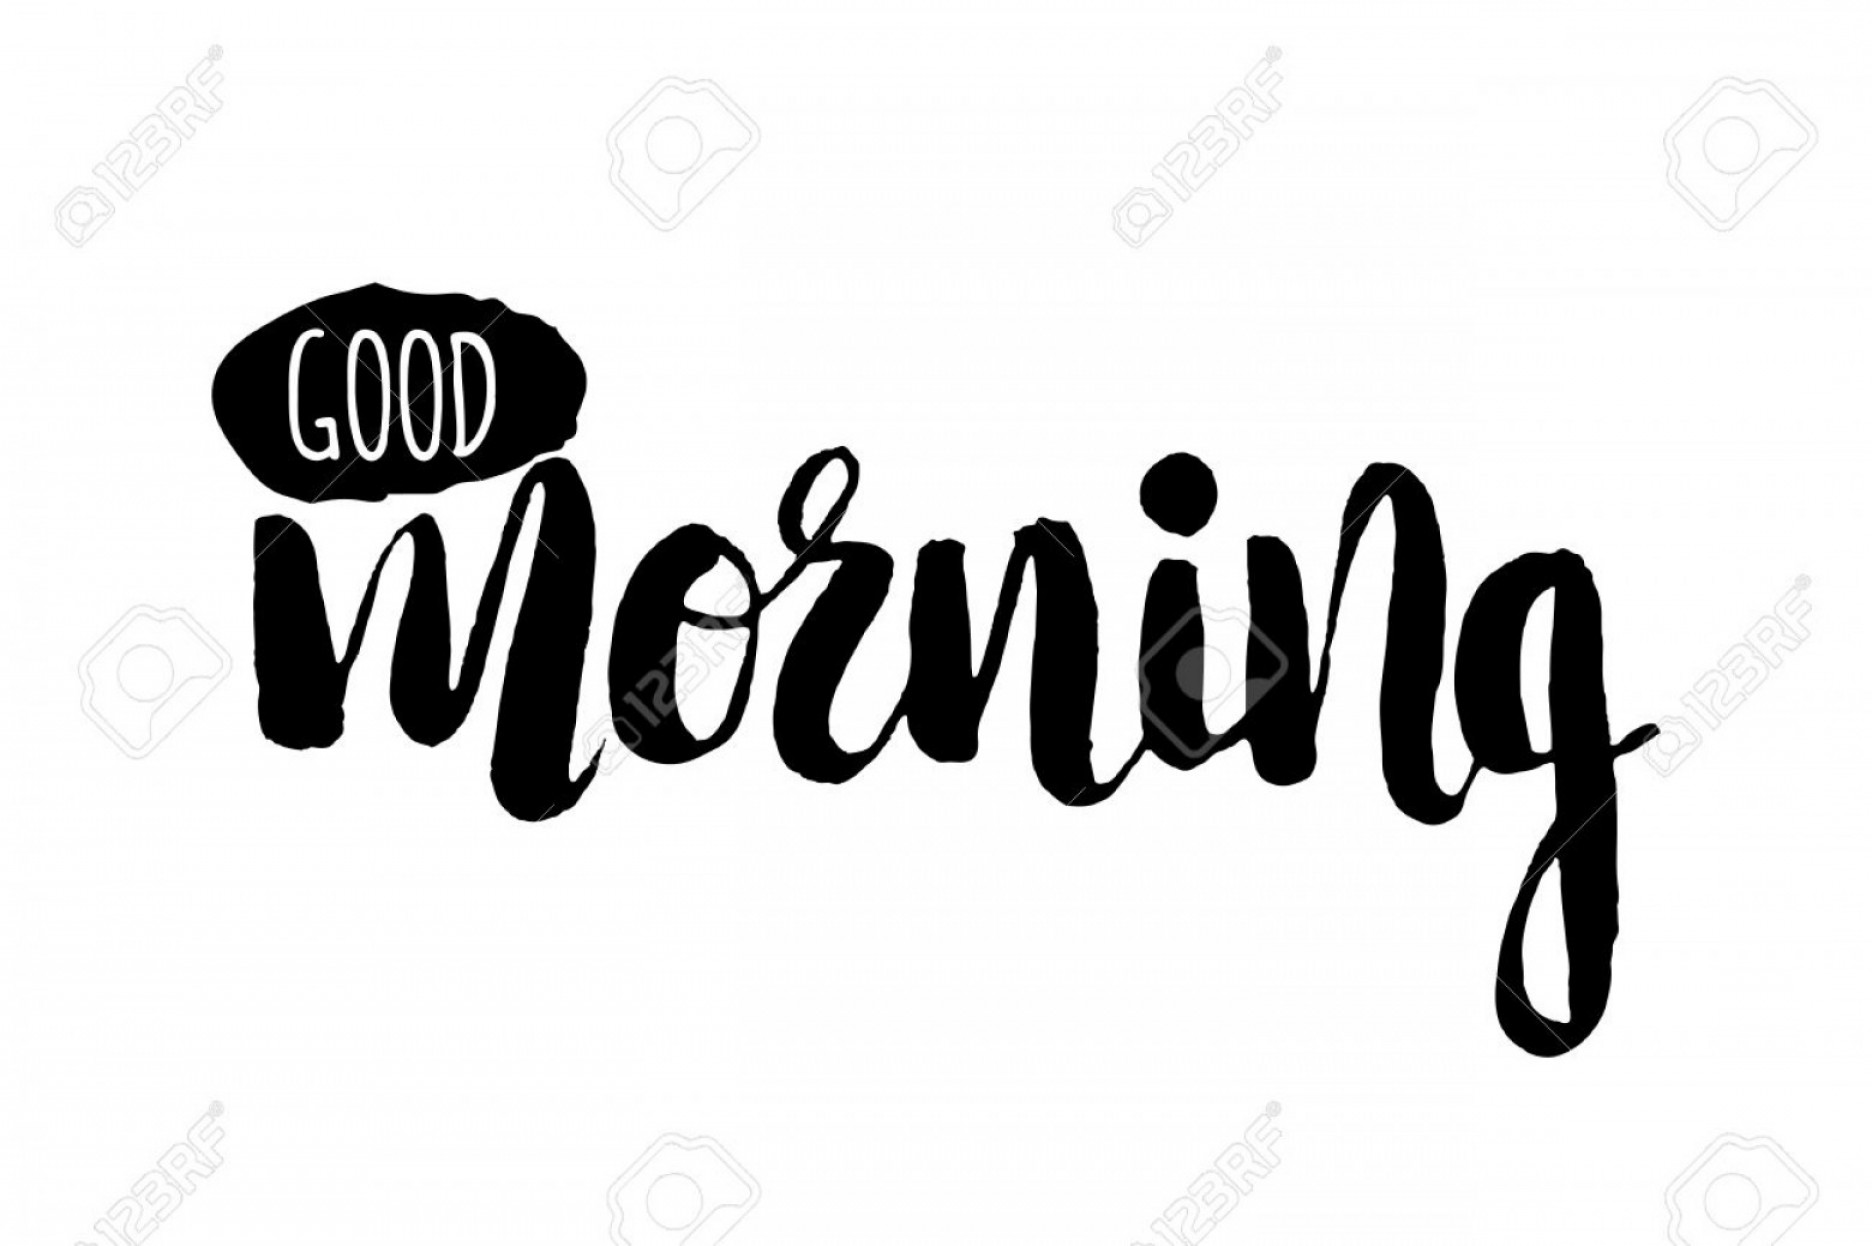 Stencil Word Art Vector: Photostock Vector Stencil Lettering Quotes Good Morning Isolated On White Background Vector Illustration